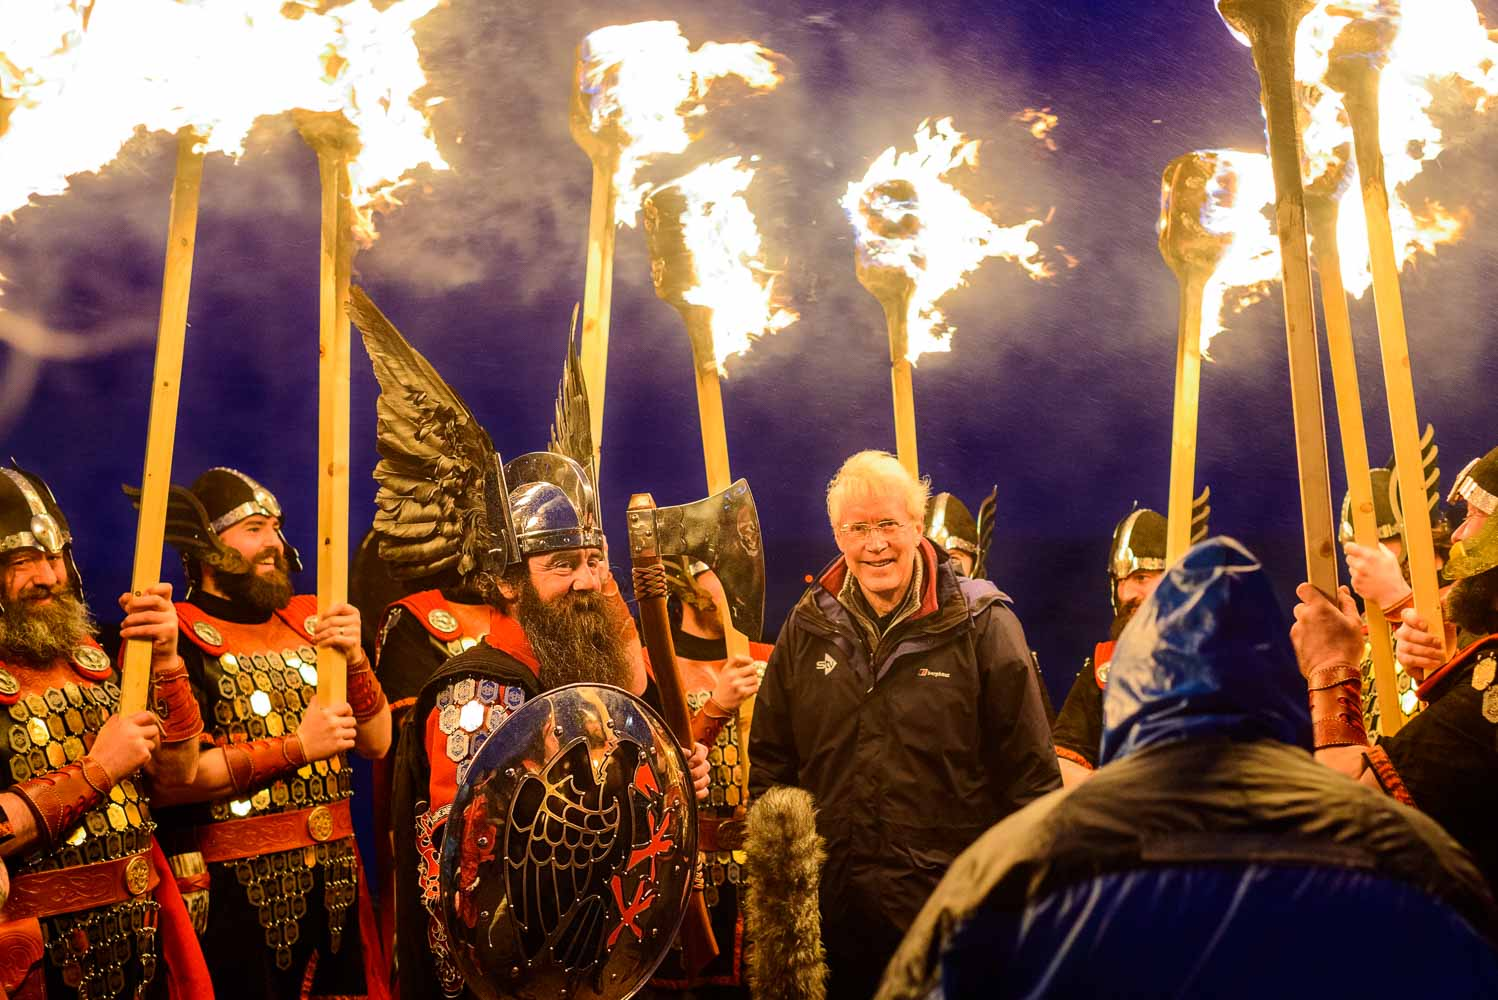 Events Photography by Iain Robinson. Up Helly Aa, Lerwick